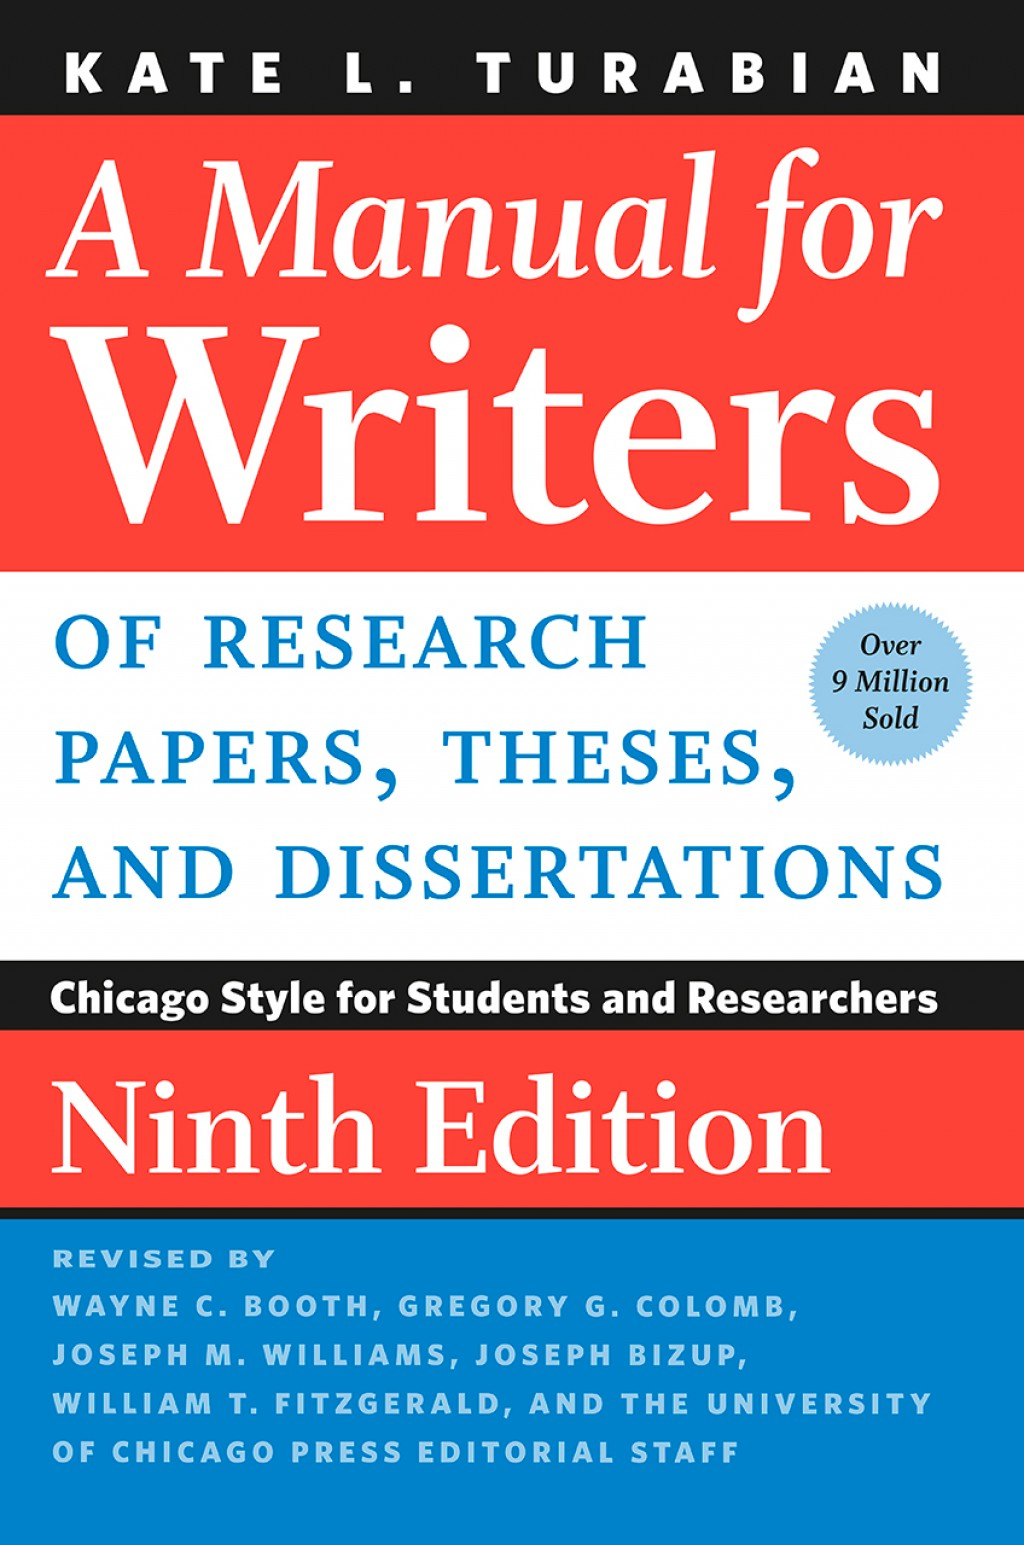 002 Research Paper Manual For Writers Of Papers Theses And Dissertations Eighth Phenomenal A Edition Pdf Large